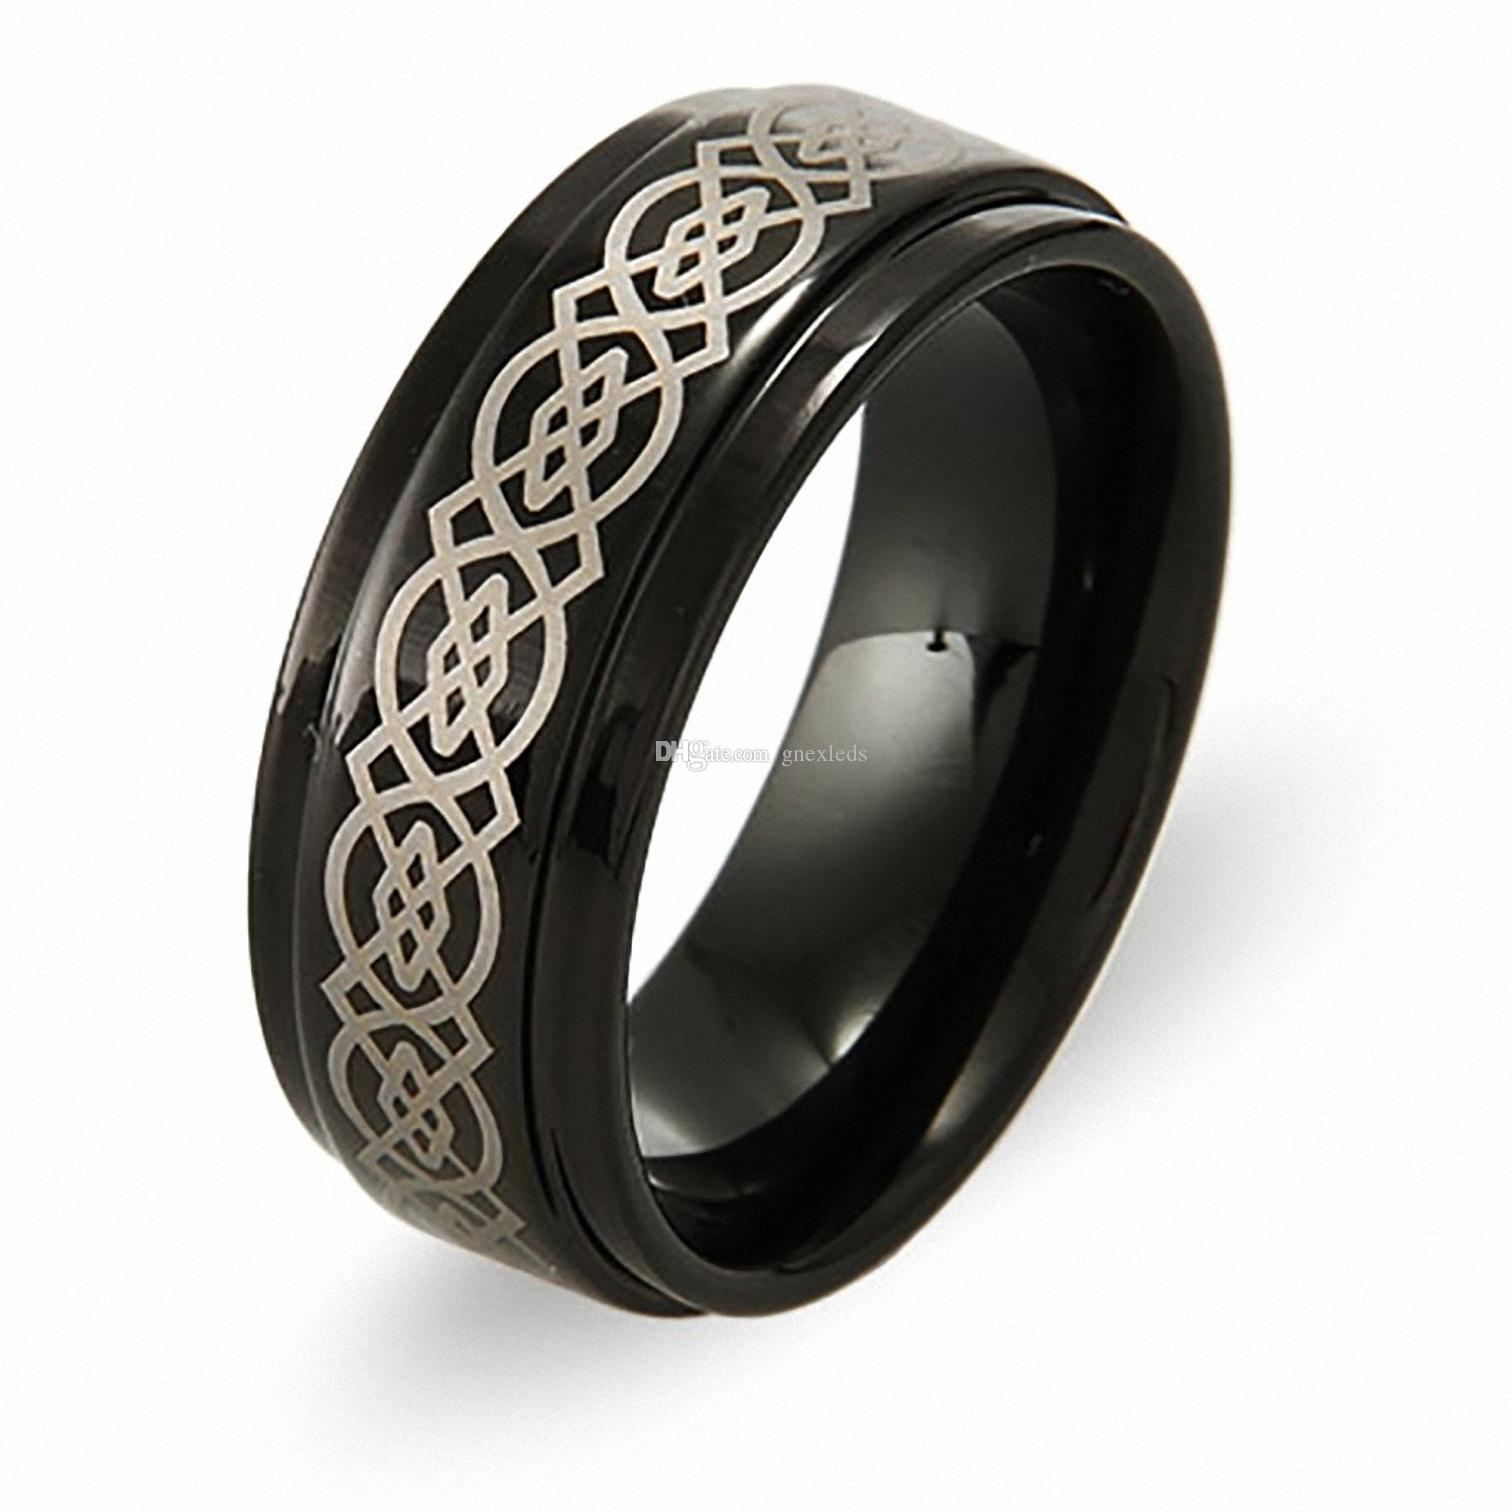 rings womens faceted amazon wedding ceramic com in to for edge band sizes black ring available jewelry dp men and bands mens